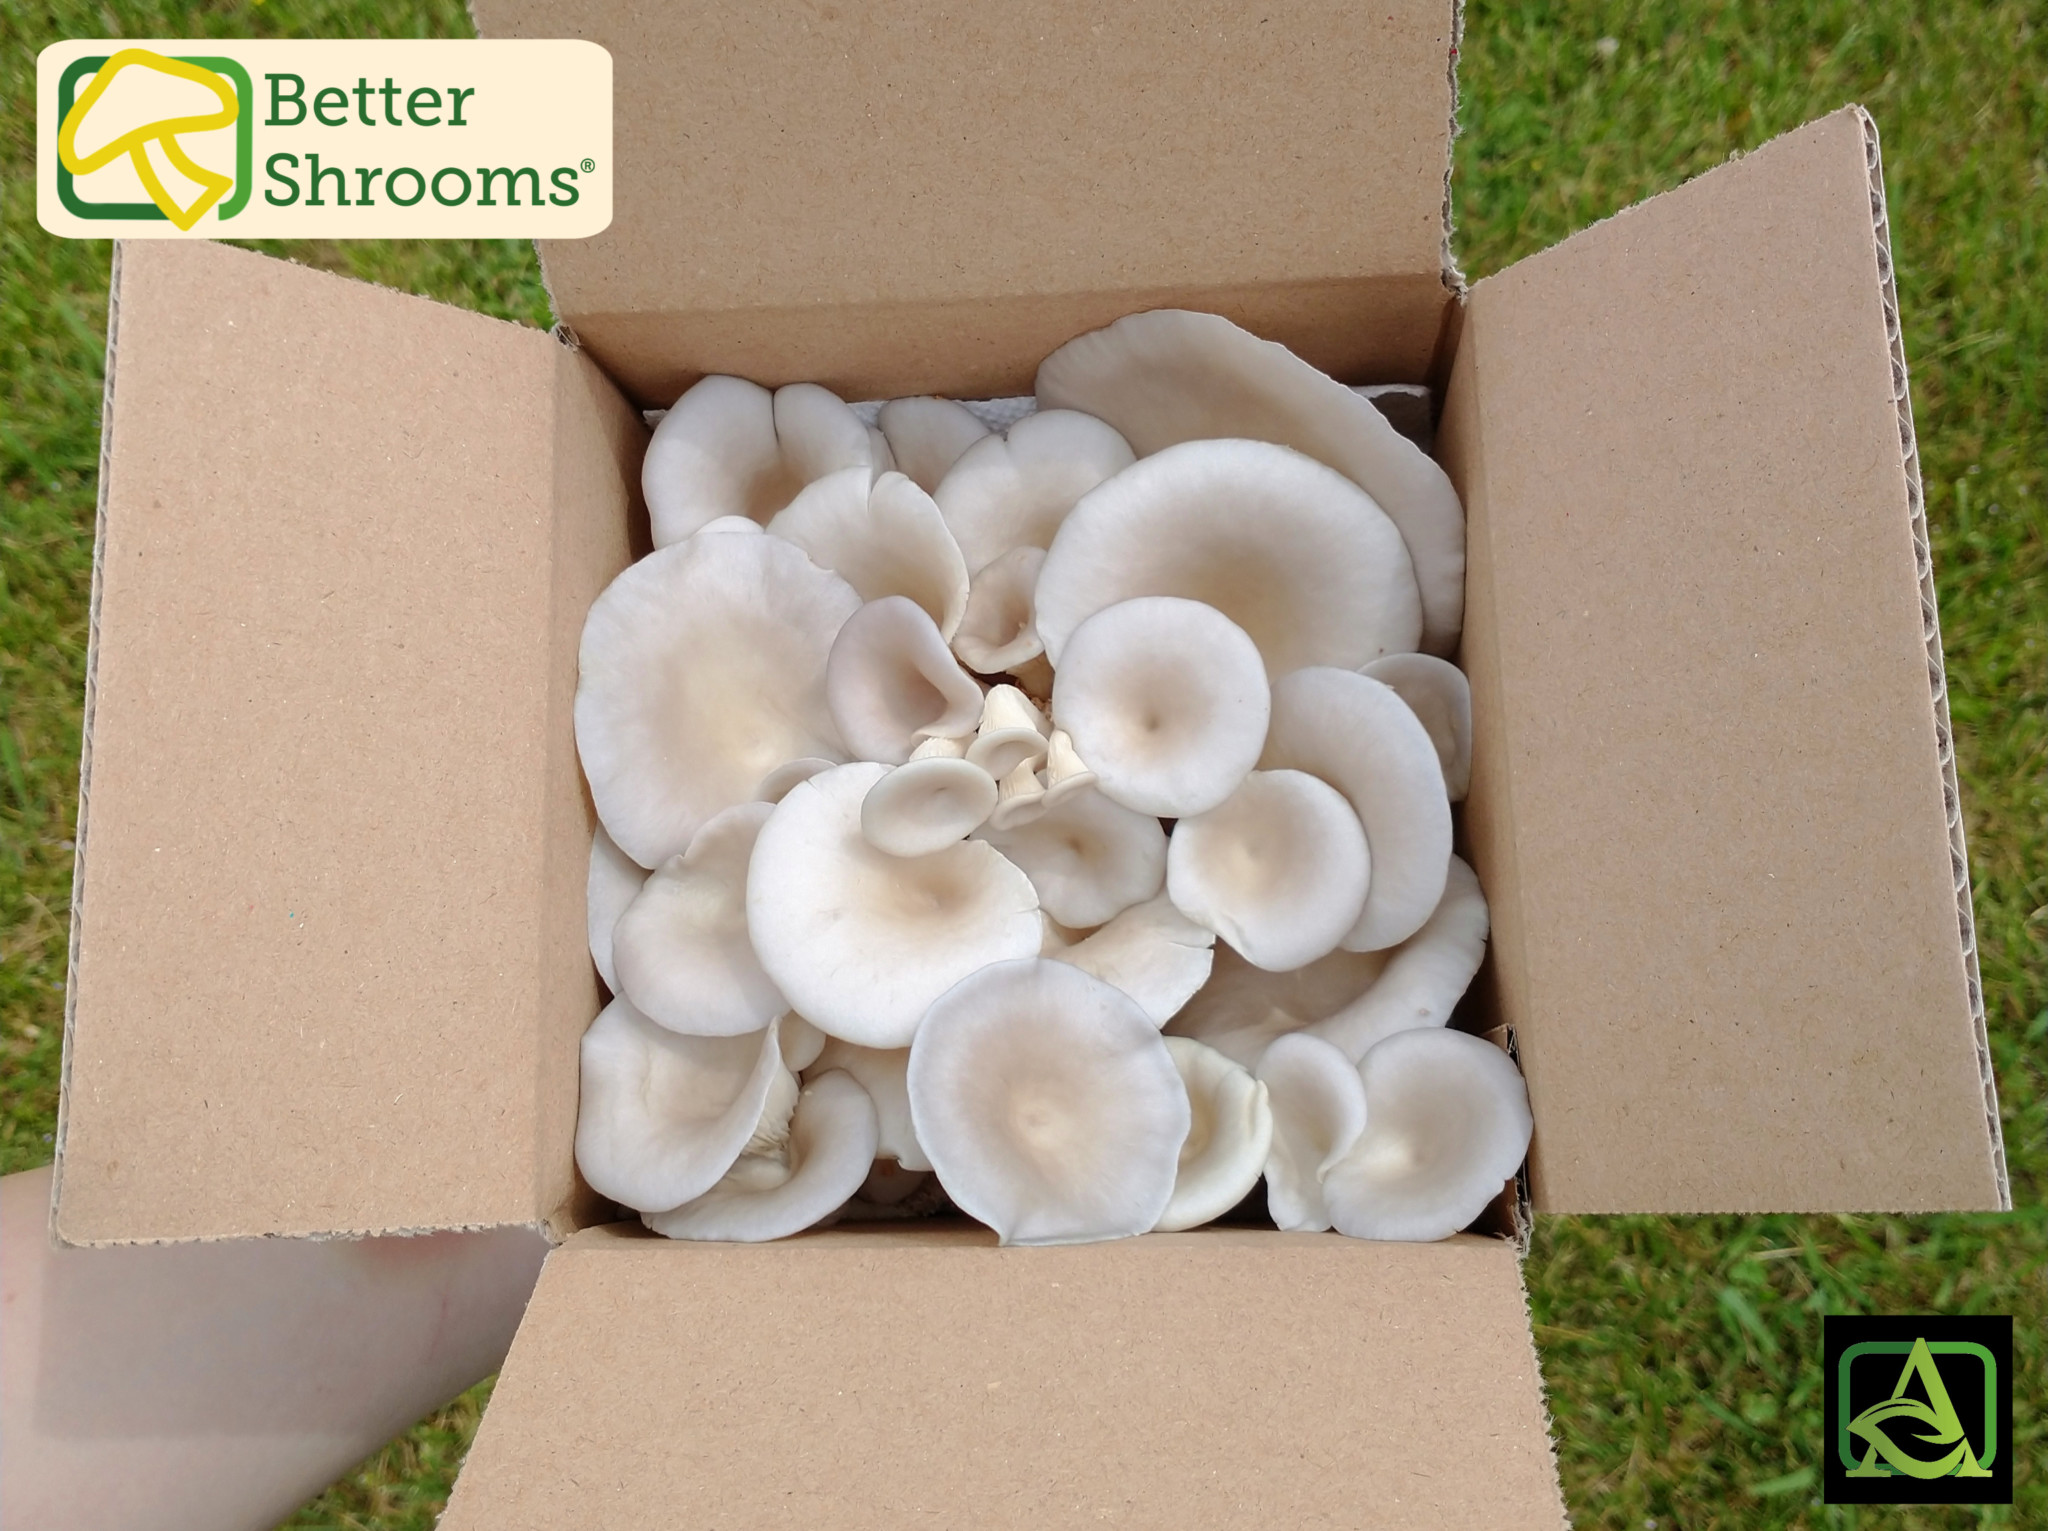 better shrooms